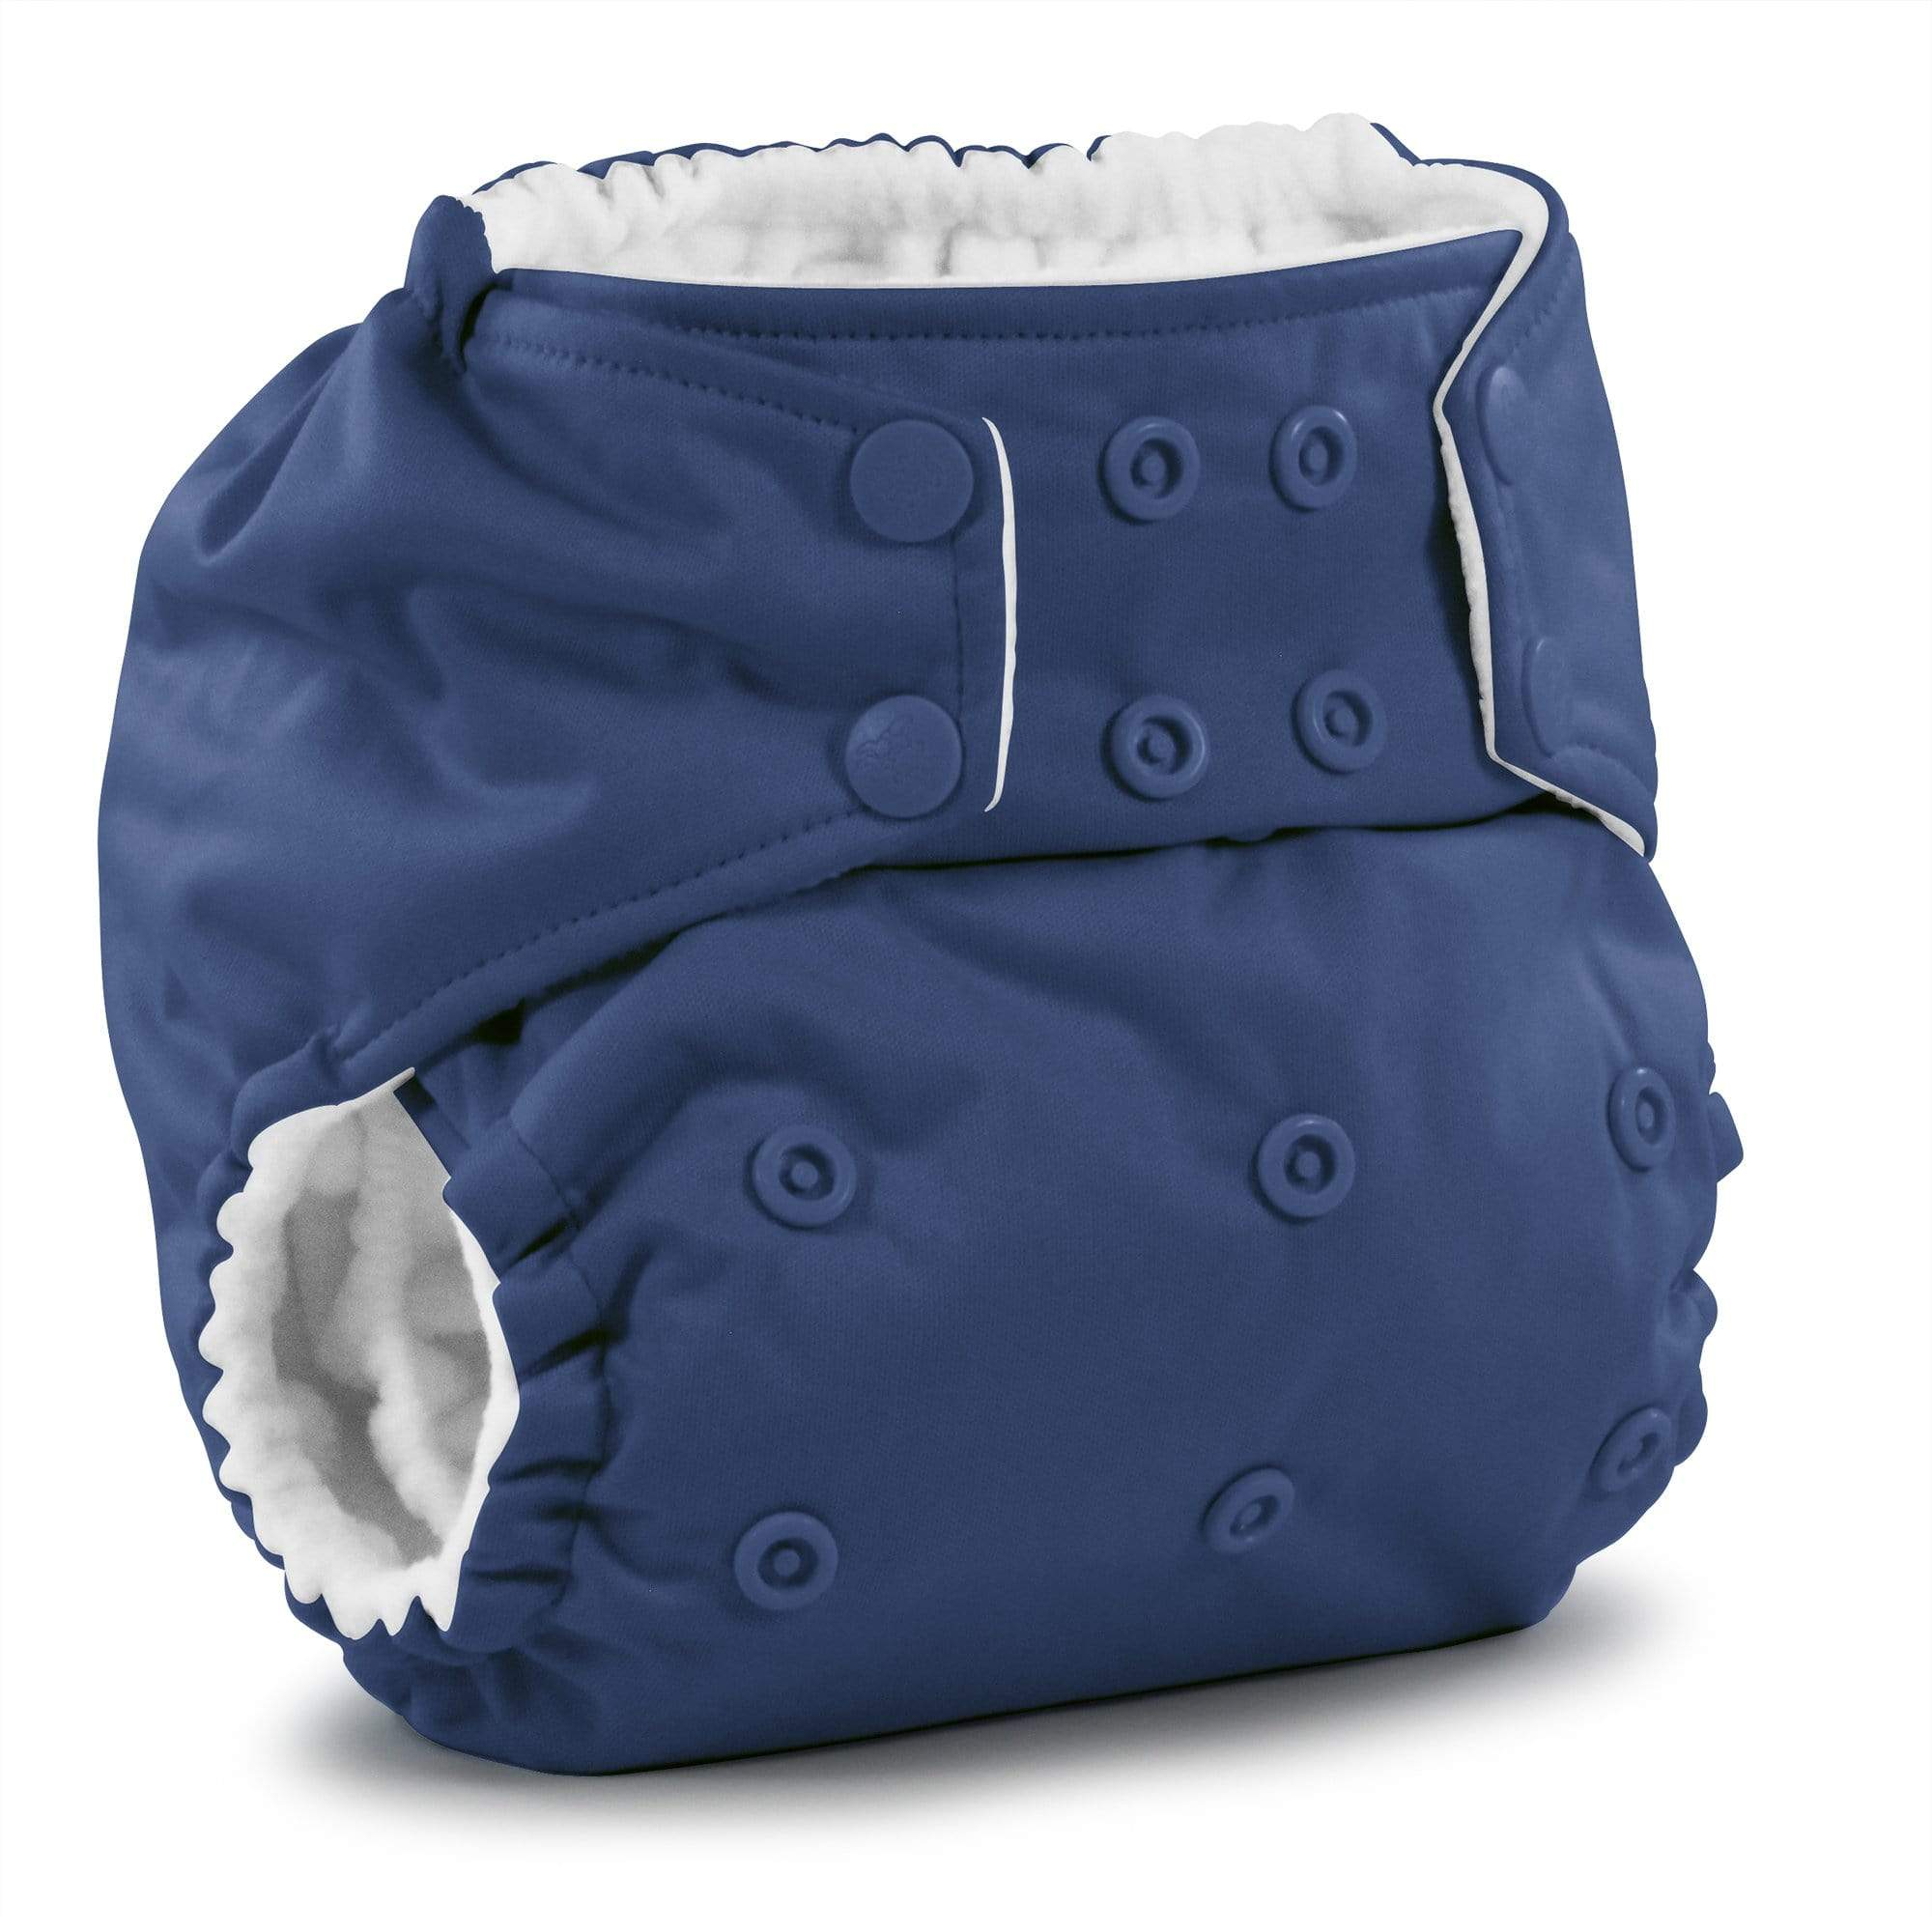 KangaCare Rumparooz One Size Pocket Diaper - Nautical